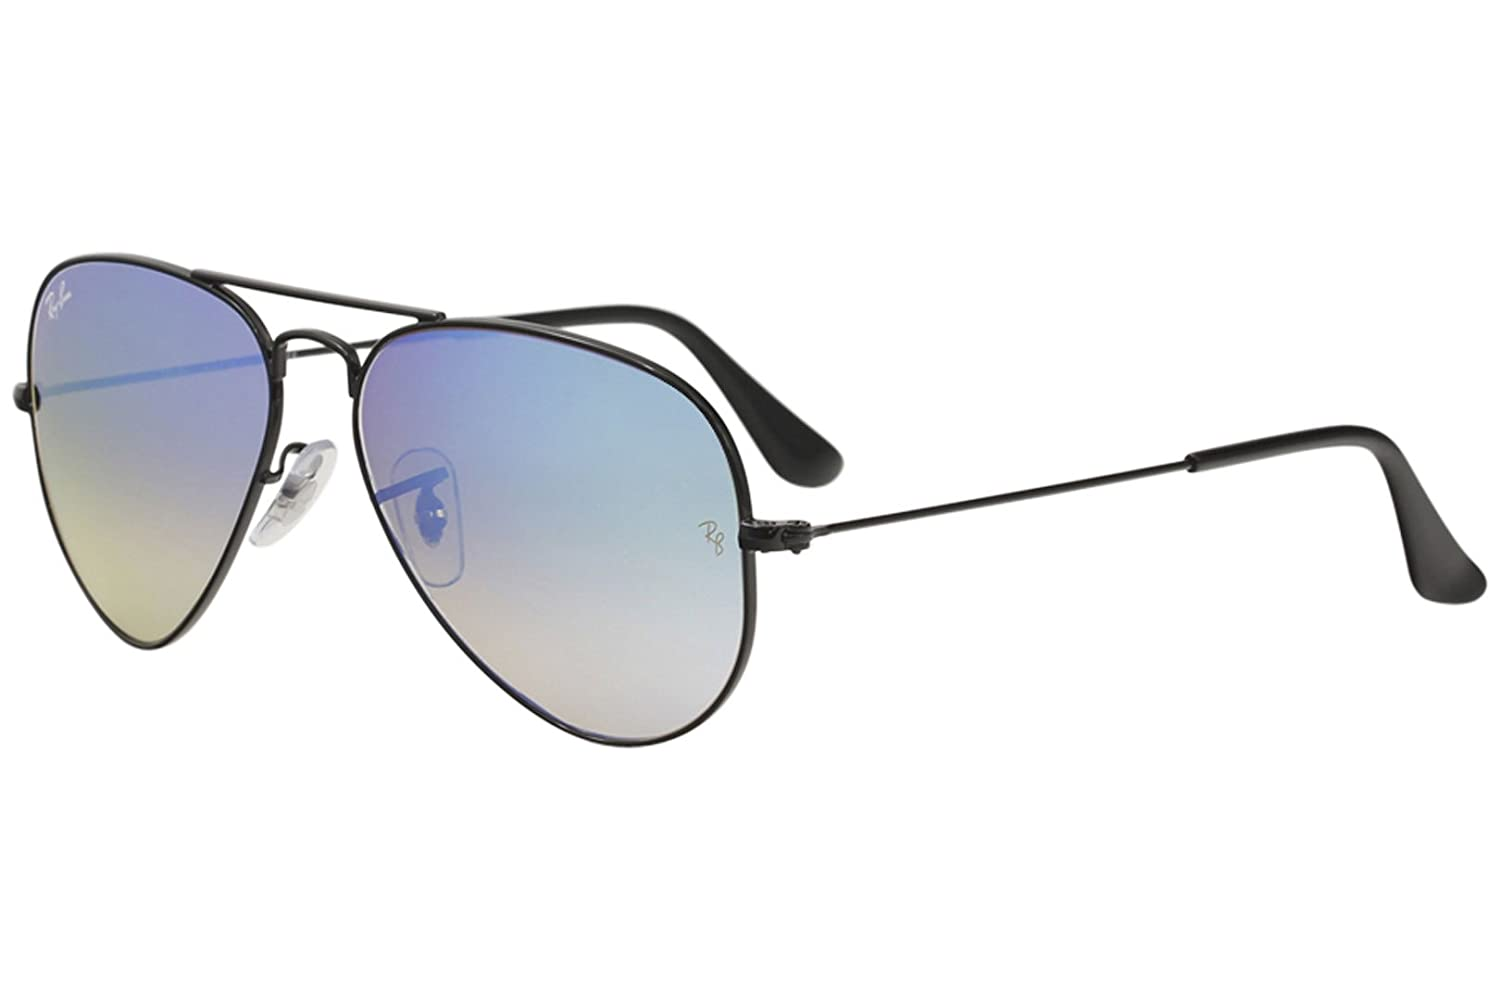 1f957d6773e05 Amazon.com  Ray Ban RB3025 Aviator Sunglasses-002 40 Black (Crystal Gray  Mirror Lens)-55mm  Clothing